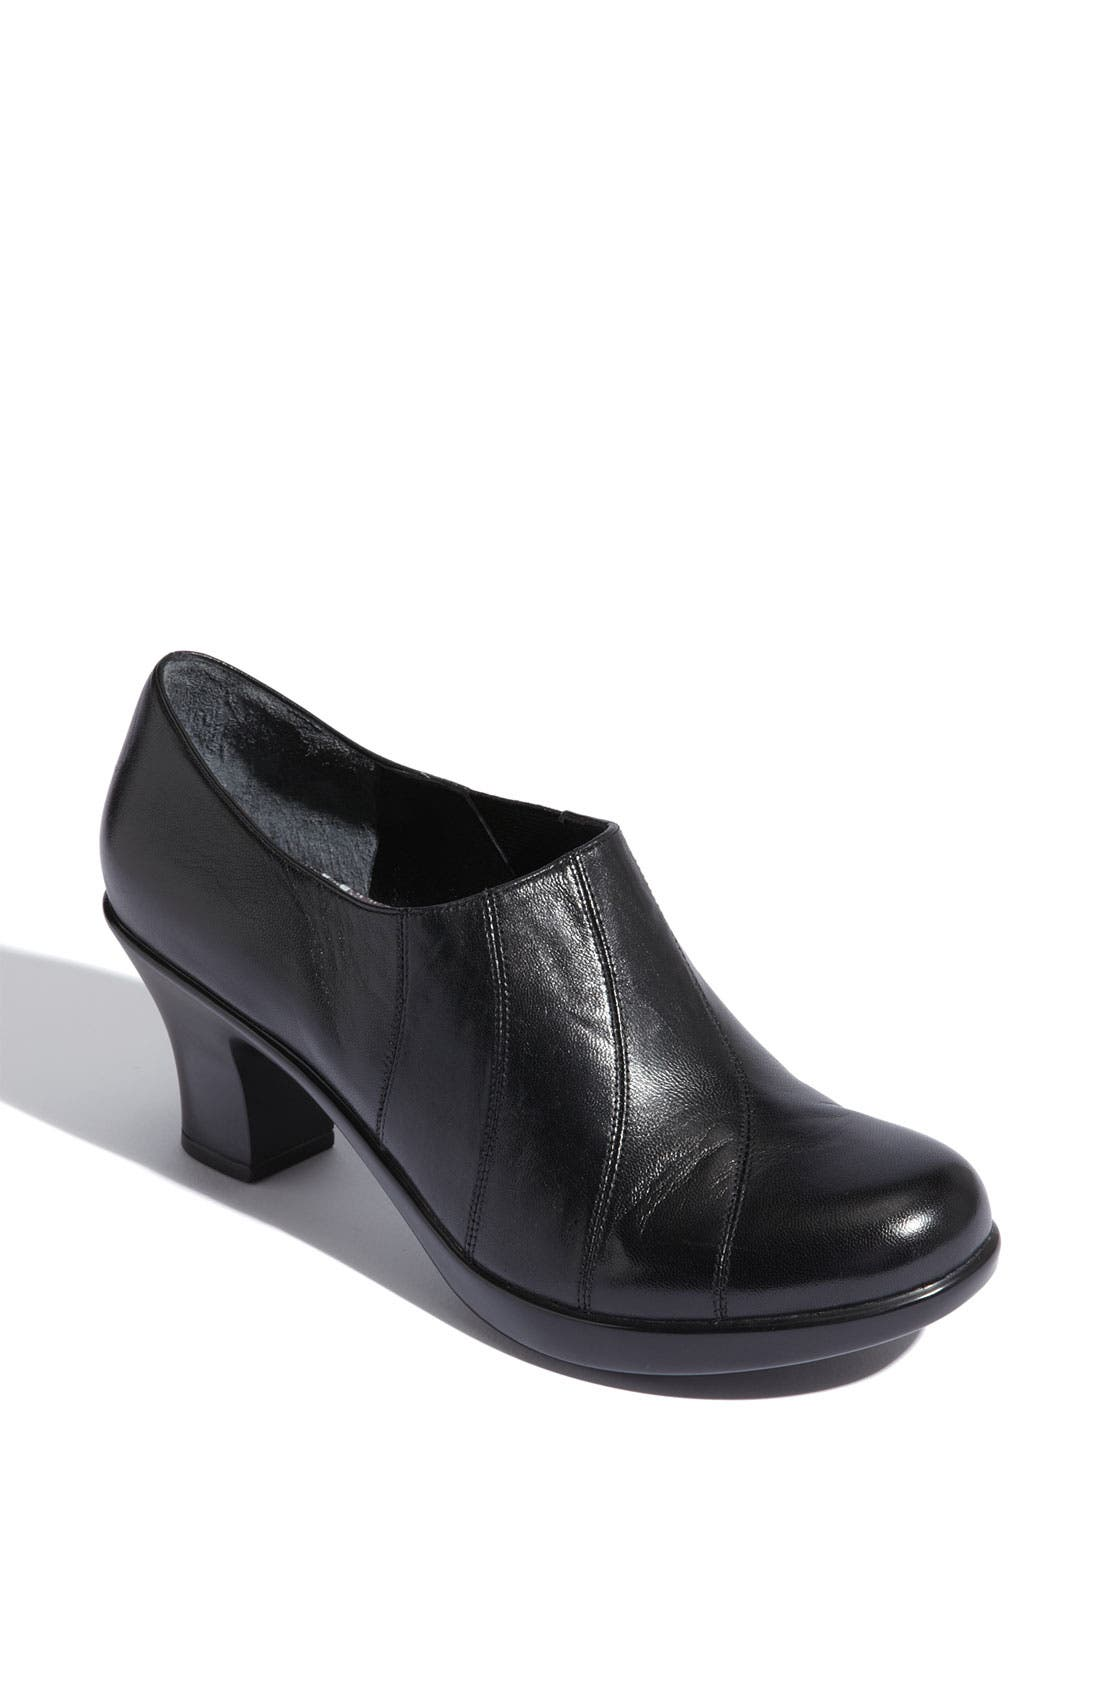 Alternate Image 1 Selected - Dansko 'Bennett' Pump